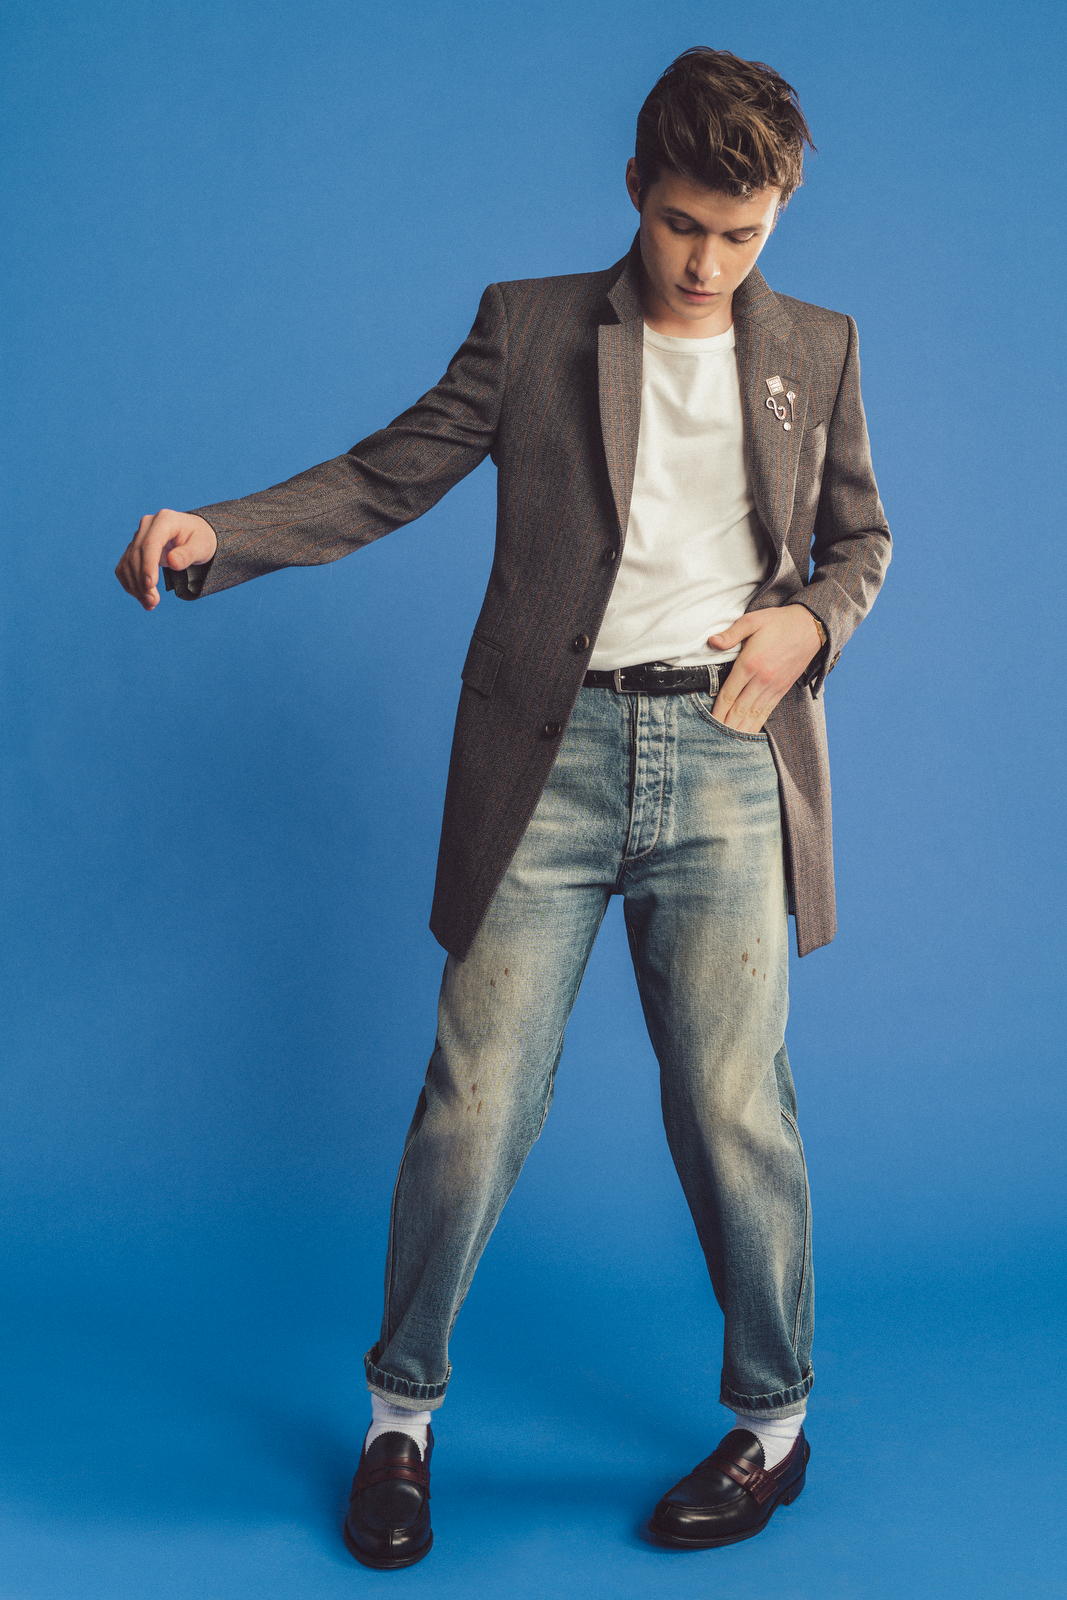 gq_nickrobinson02.jpg